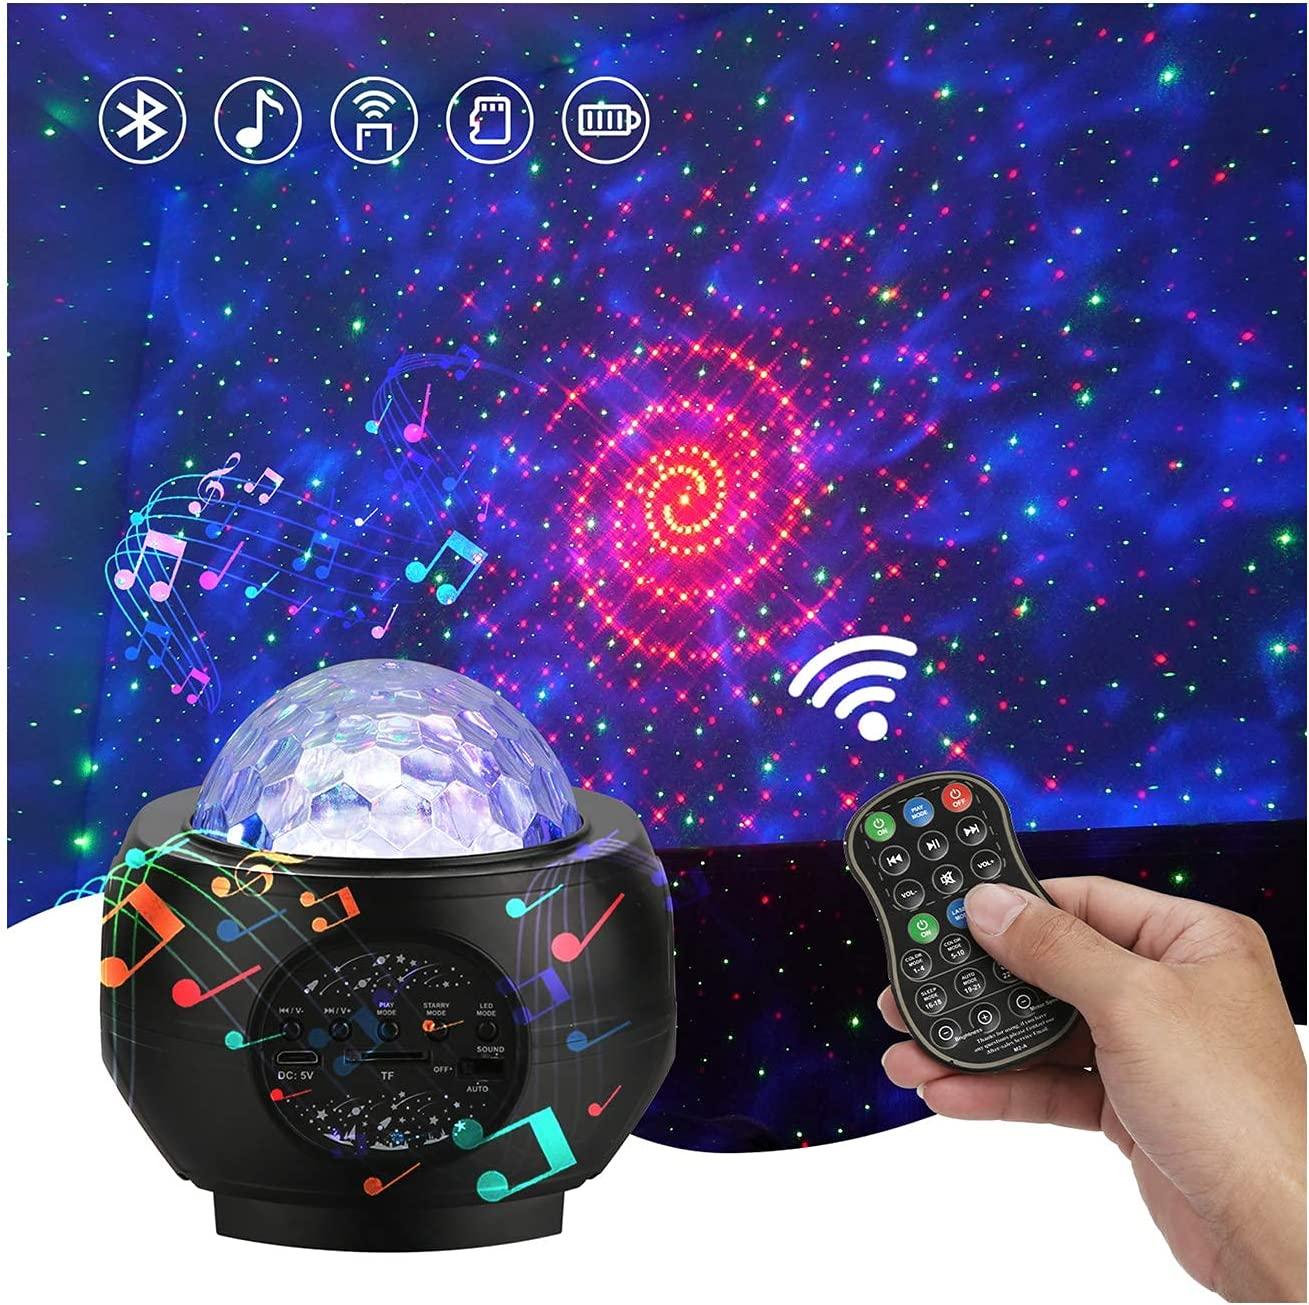 Galaxy Star Projector on Ceiling 3 safety 1 Be Starry for Max 44% OFF in